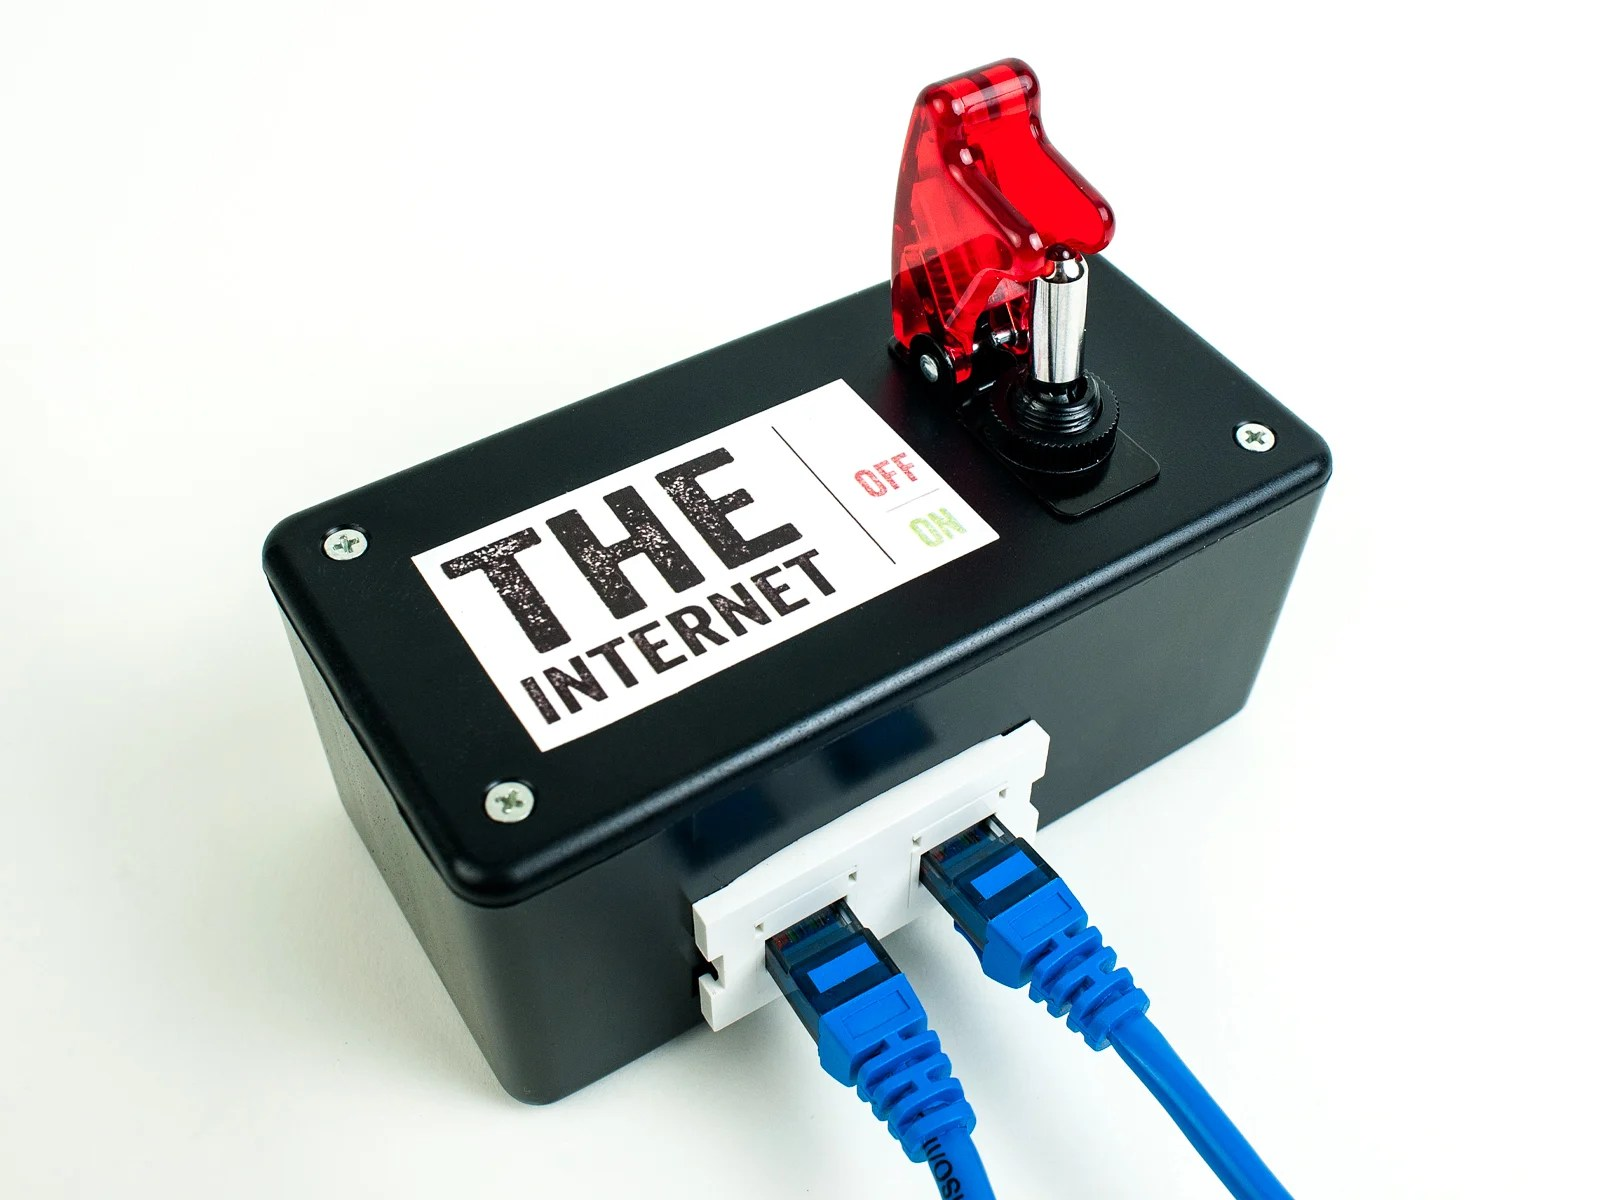 hight resolution of build an internet kill switch